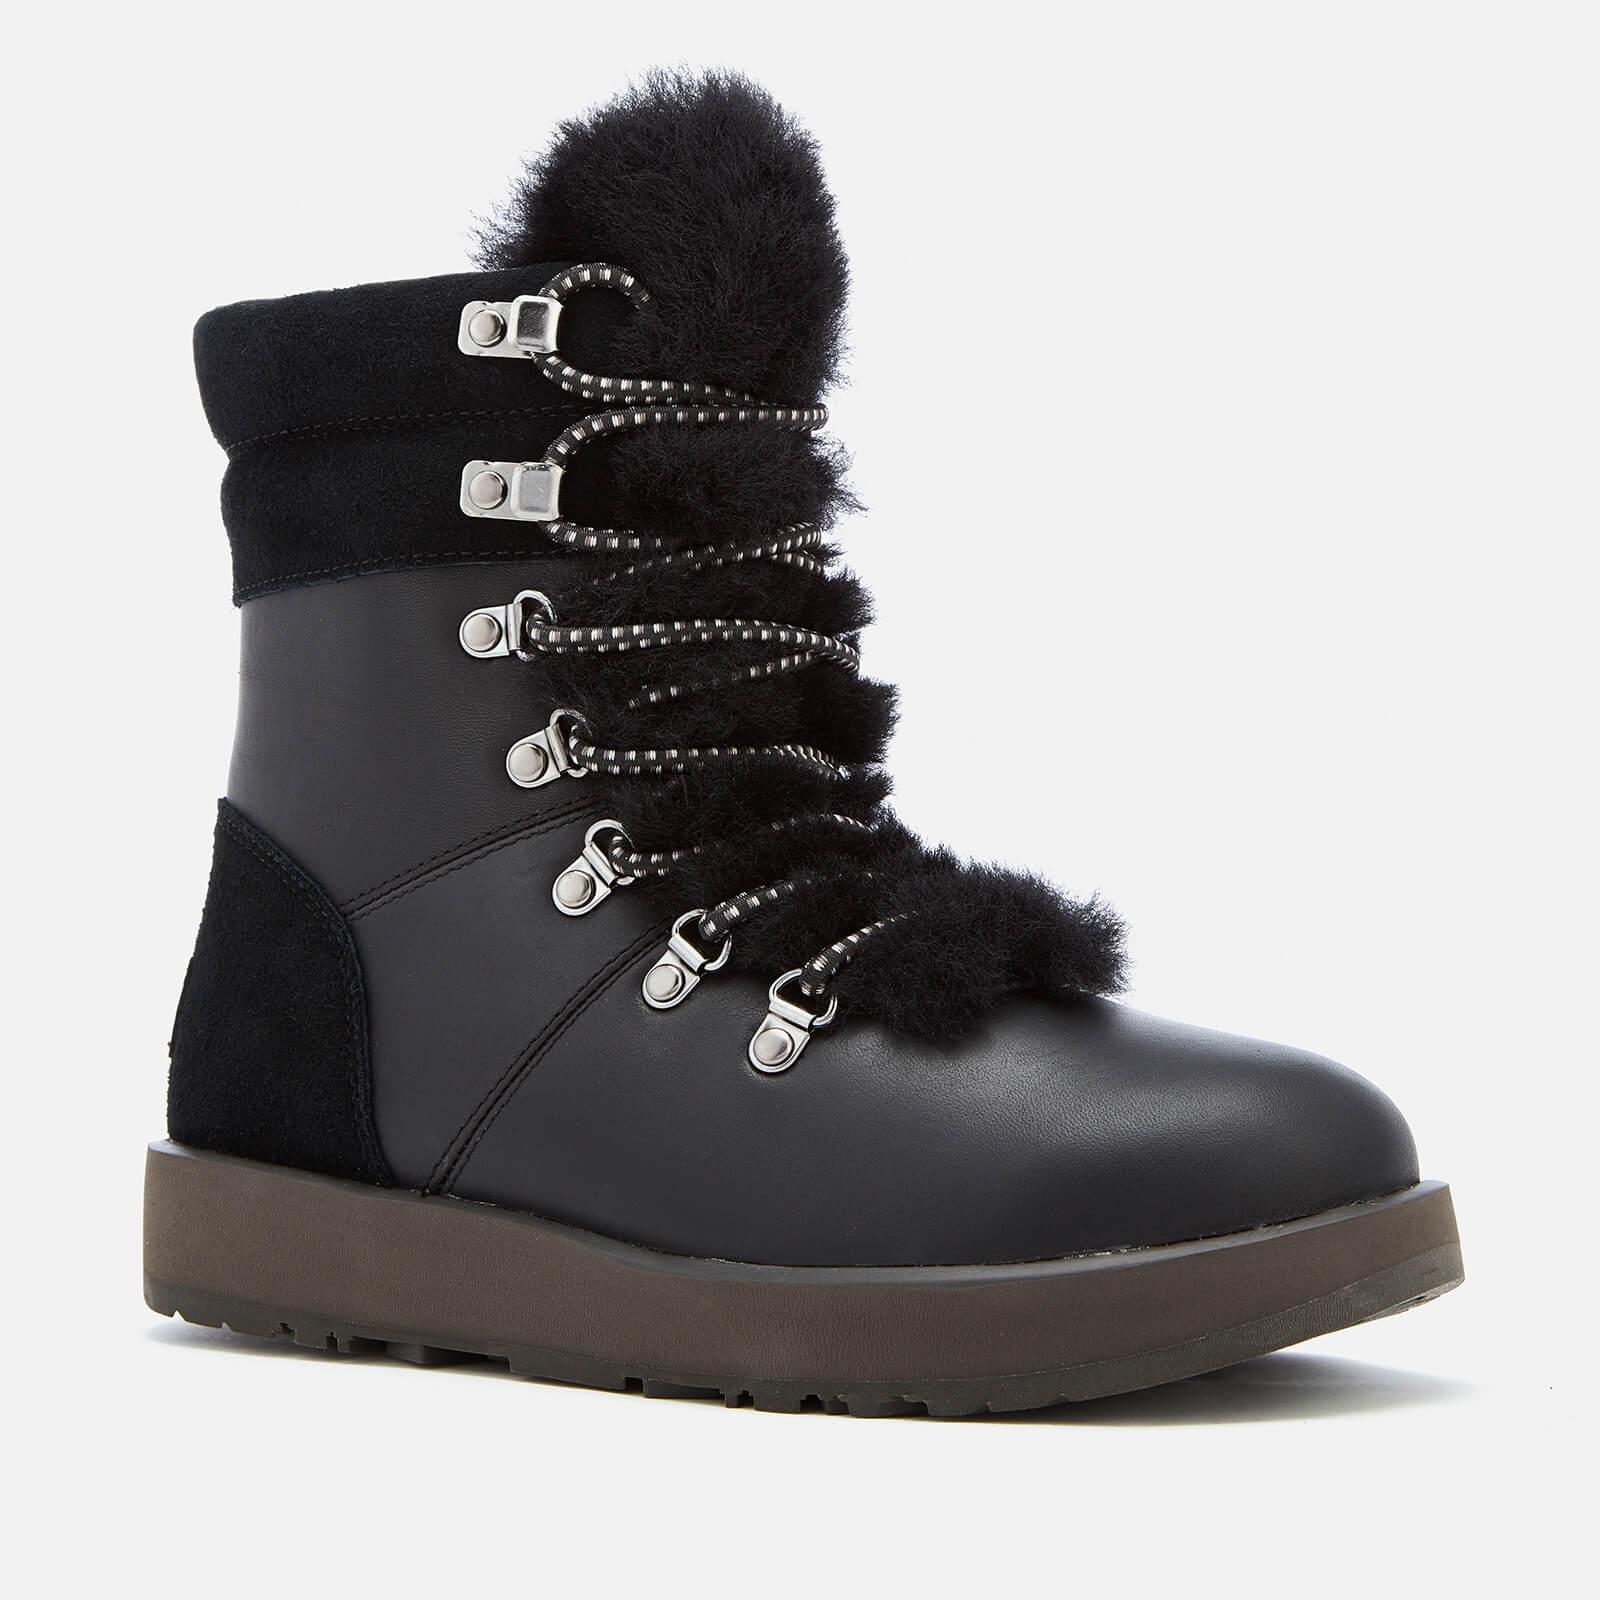 d93199538c0 UGG Women's Viki Waterproof Leather Lace Up Boots in Black - Lyst